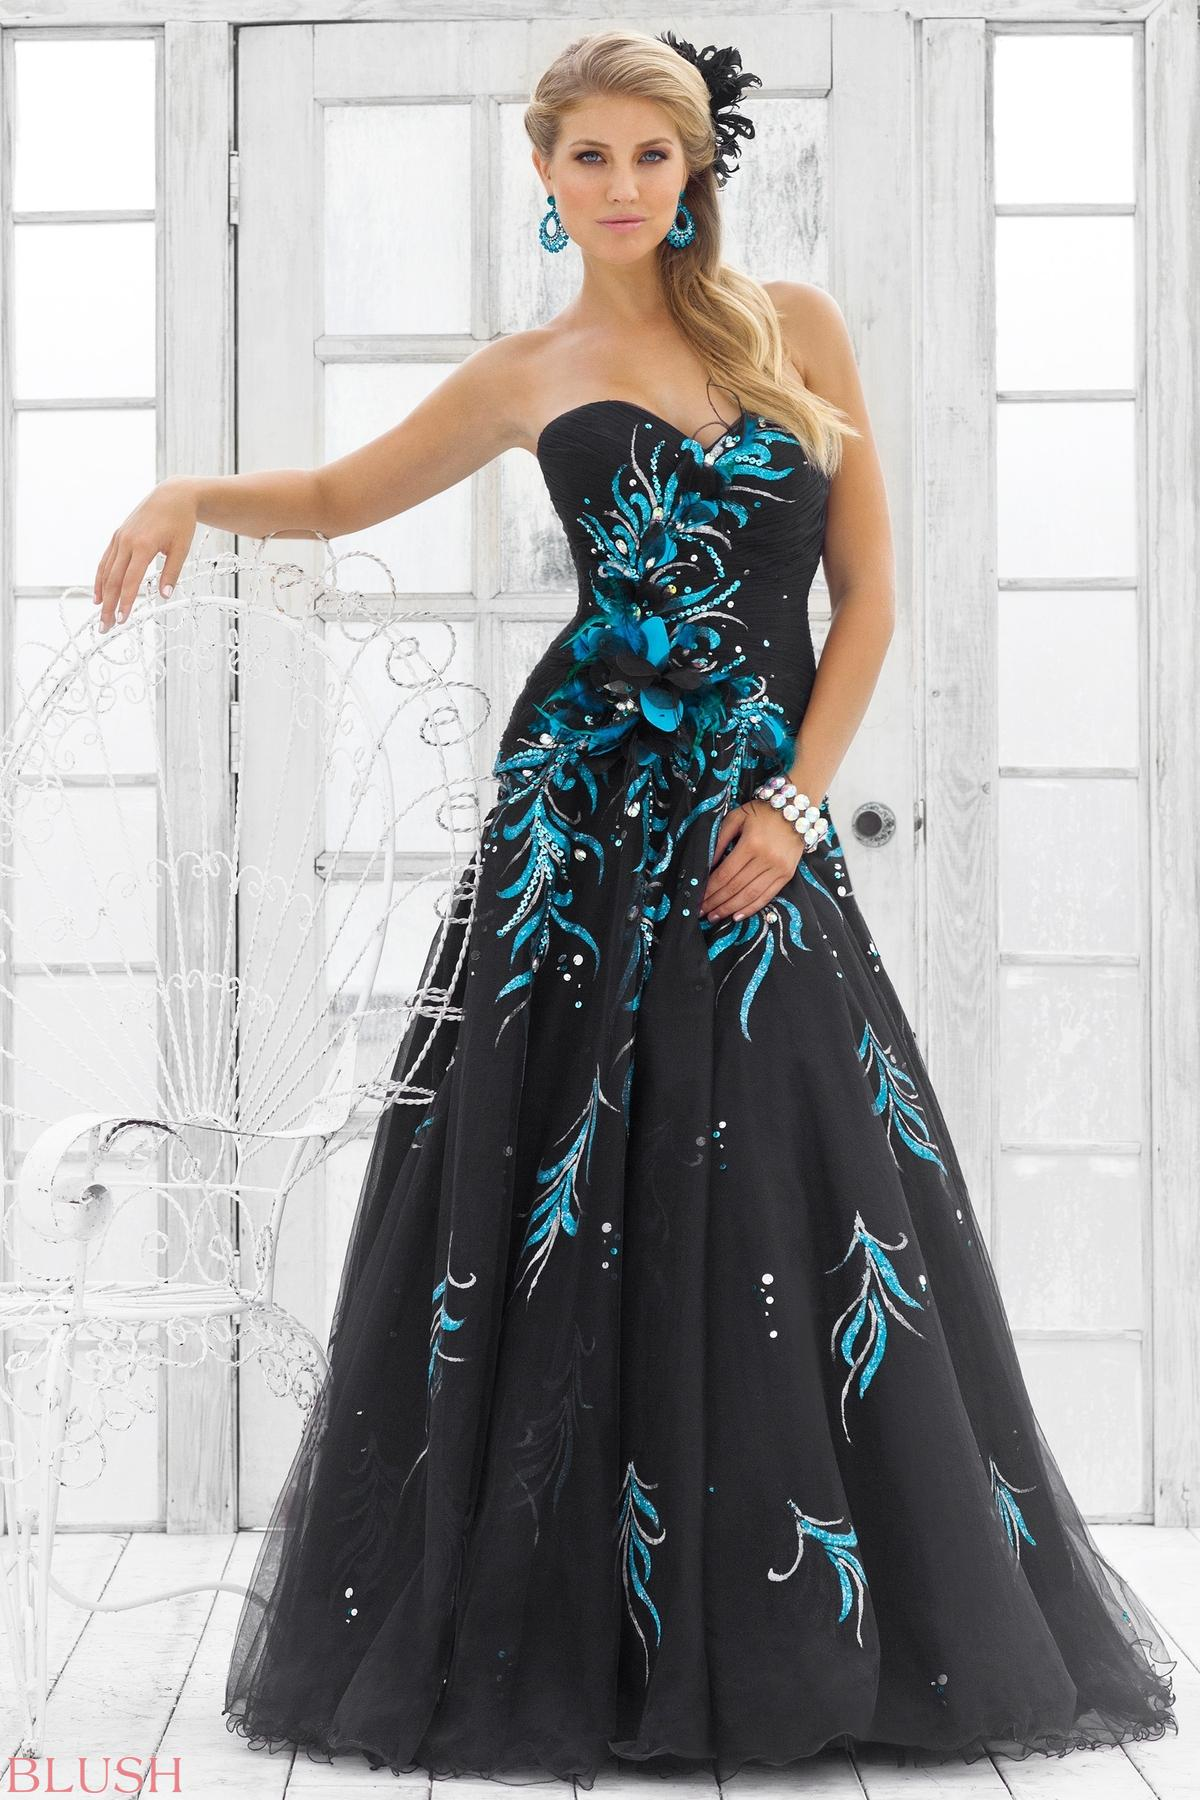 Ball gown prom dresses 2014 -  Prom Dress Places Near Me Dress Shops Near Me Style